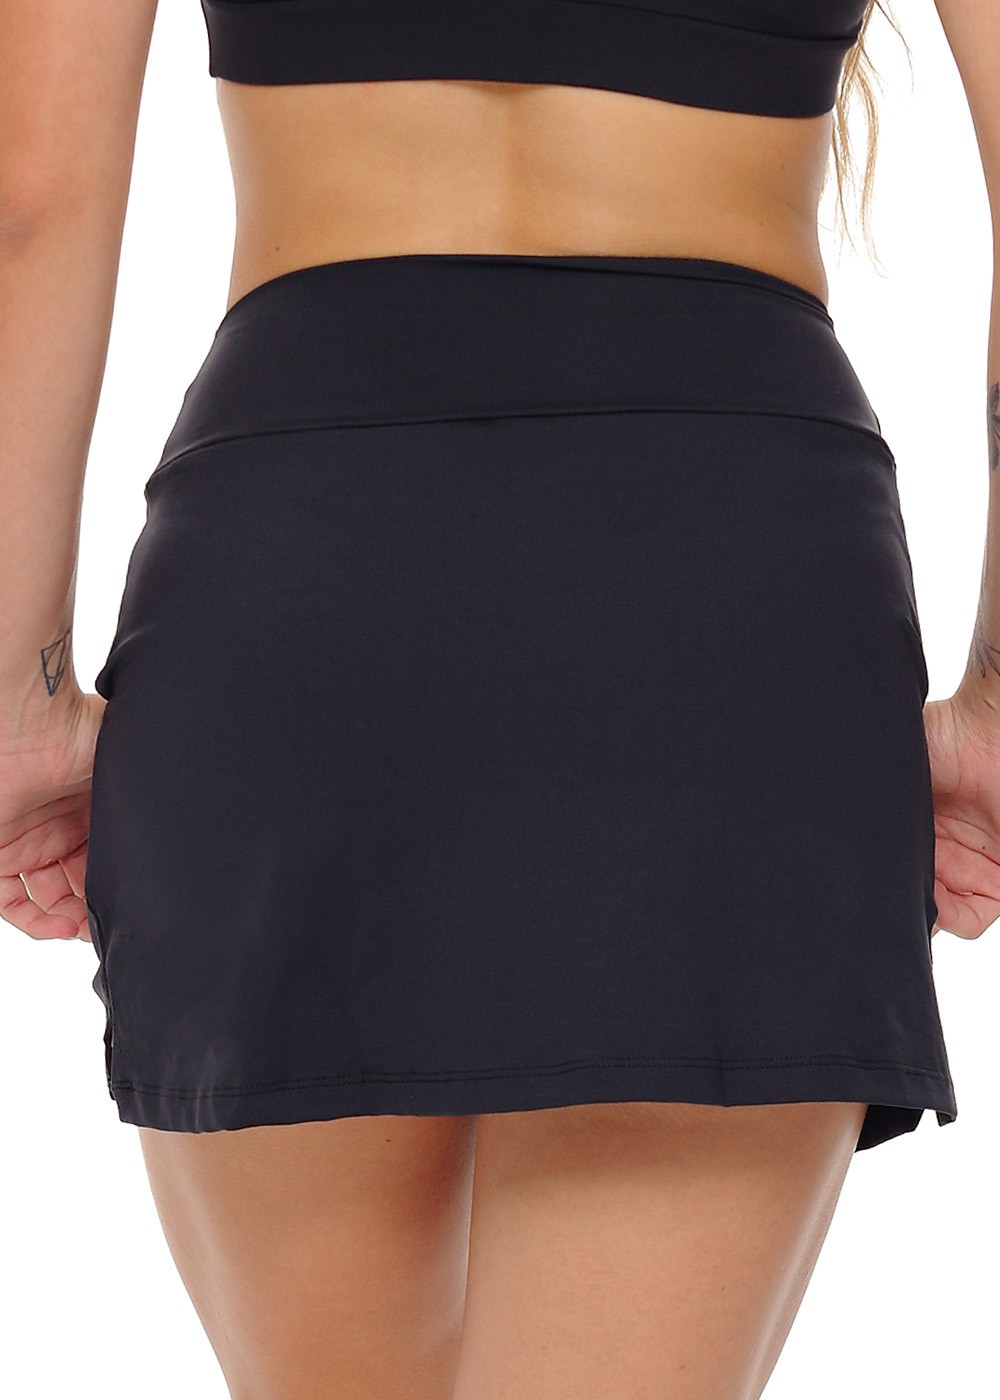 SHORTS SAIA FIT UP JUS FIT - PRETO